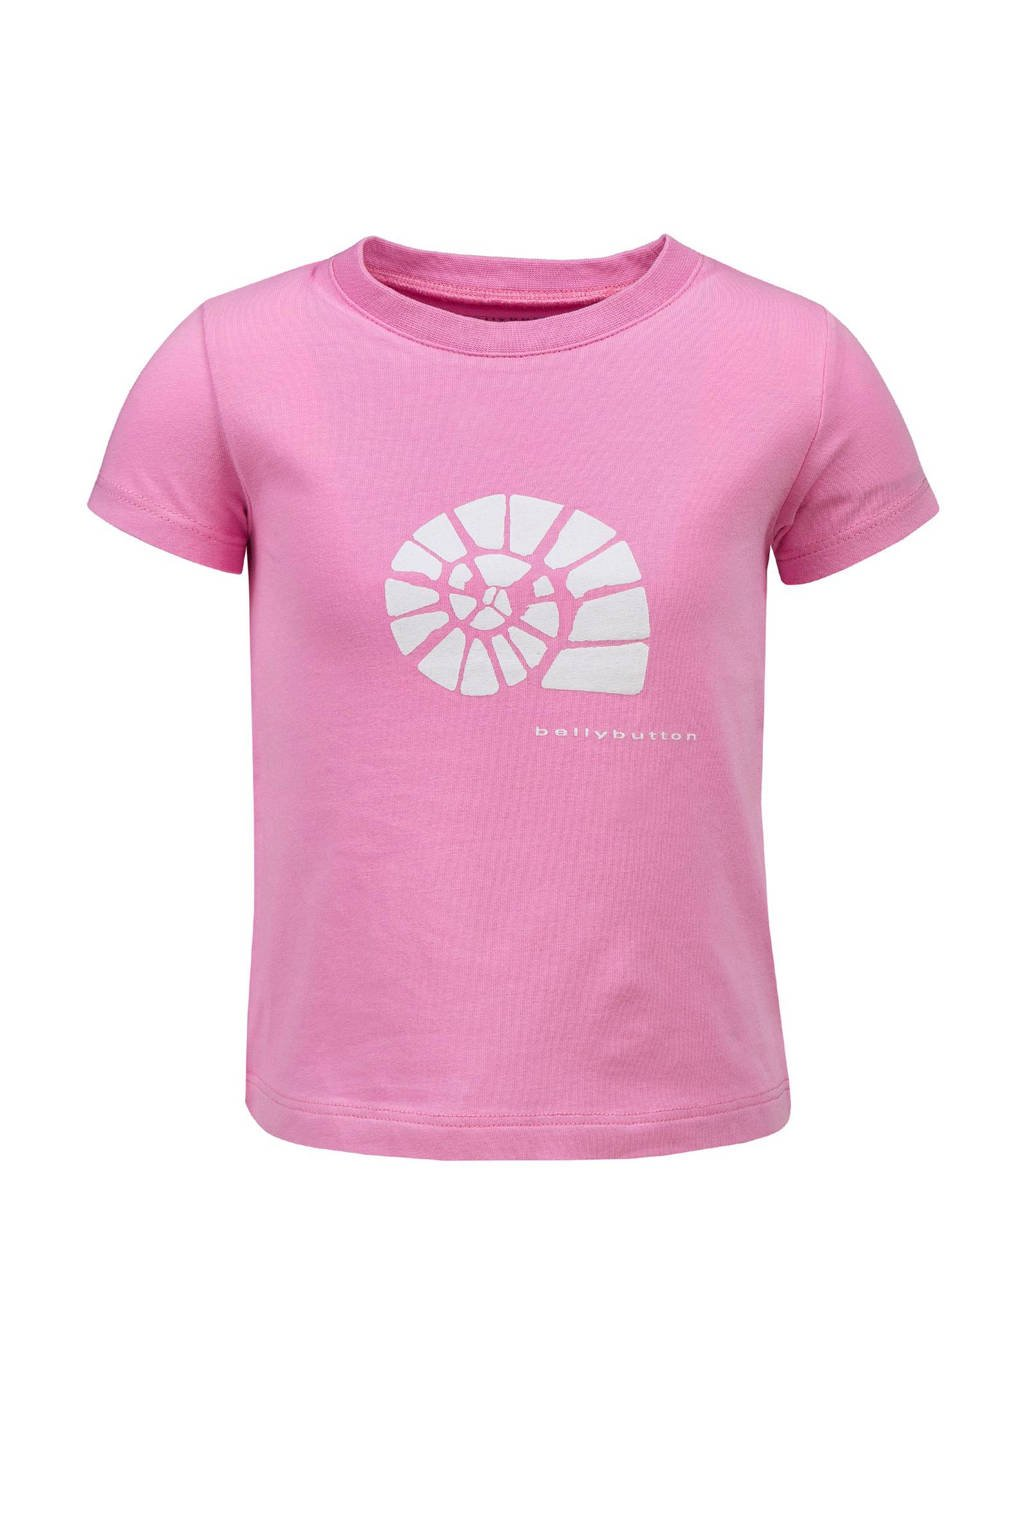 bellybutton T-shirt, Roze